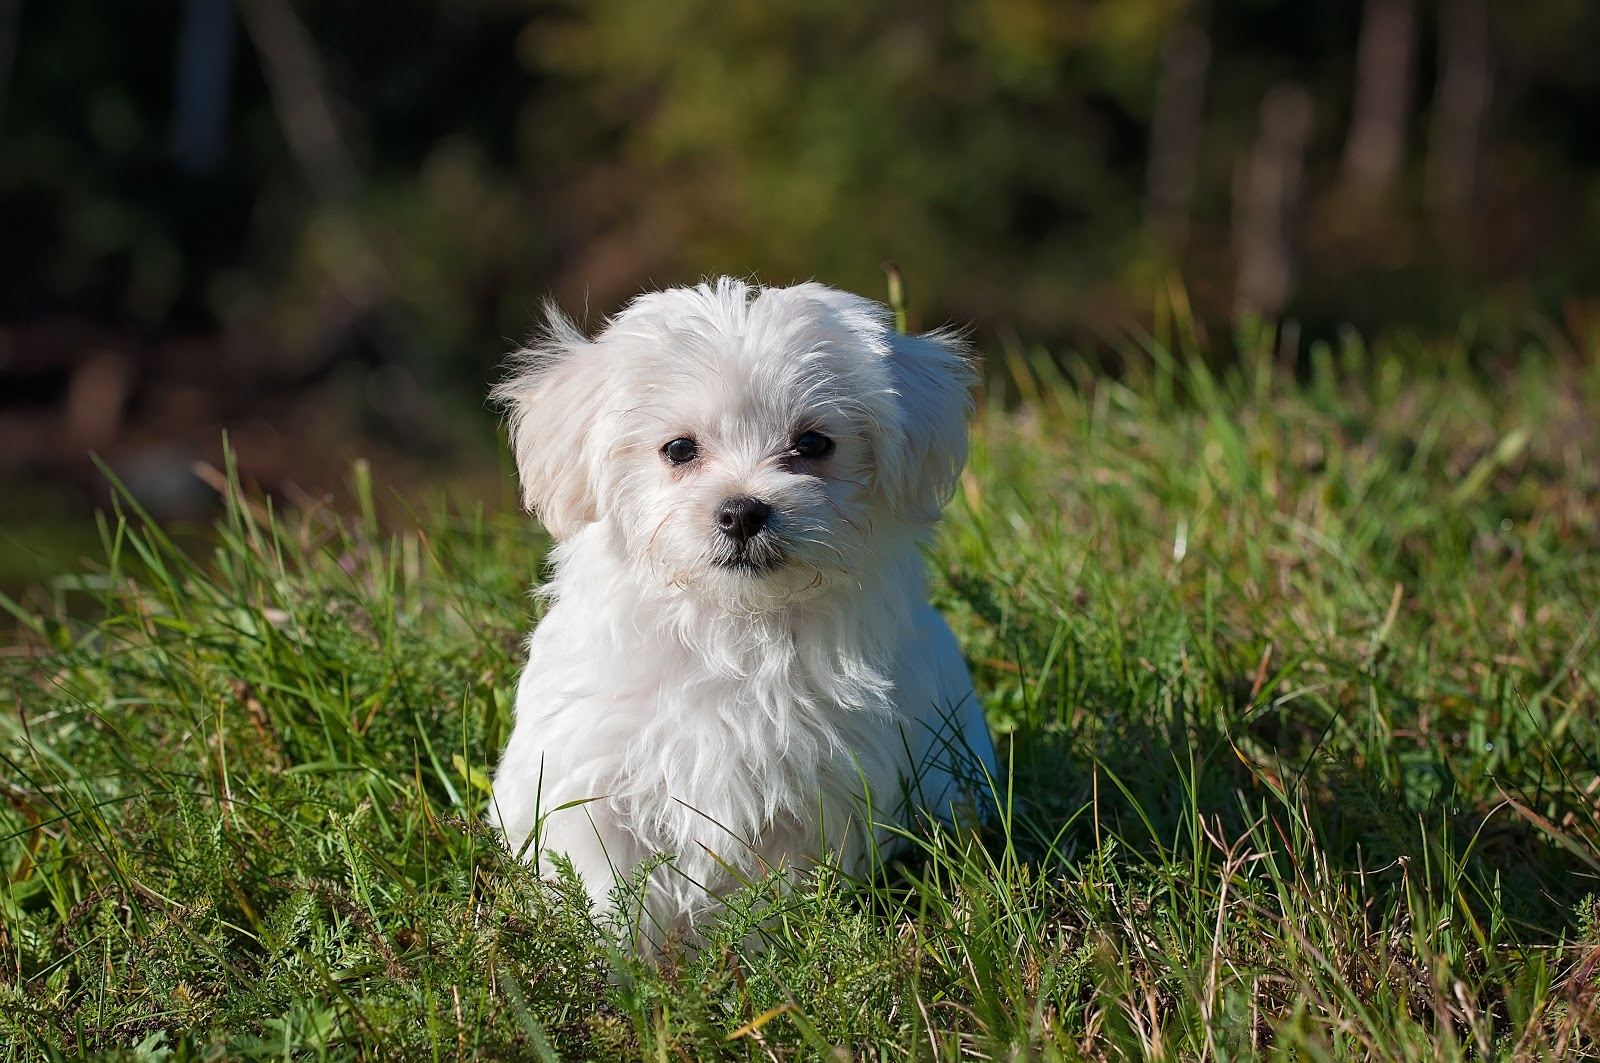 Small white dog in the grass